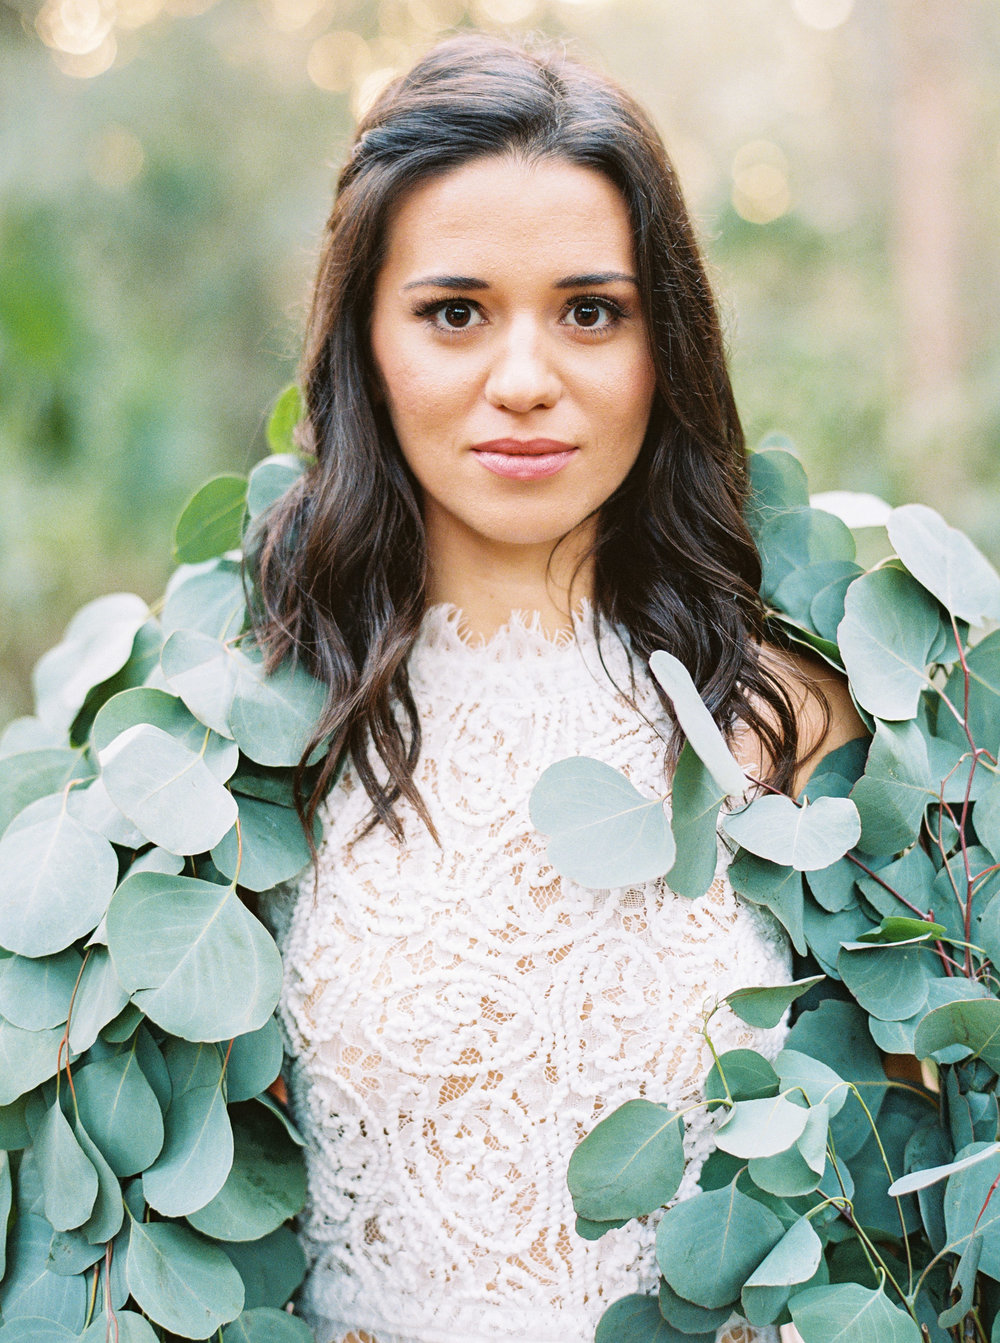 Bride+holding+eucalyptus+garland+instead+of+a+bouquet.+Floral+styled+shawl.jpg